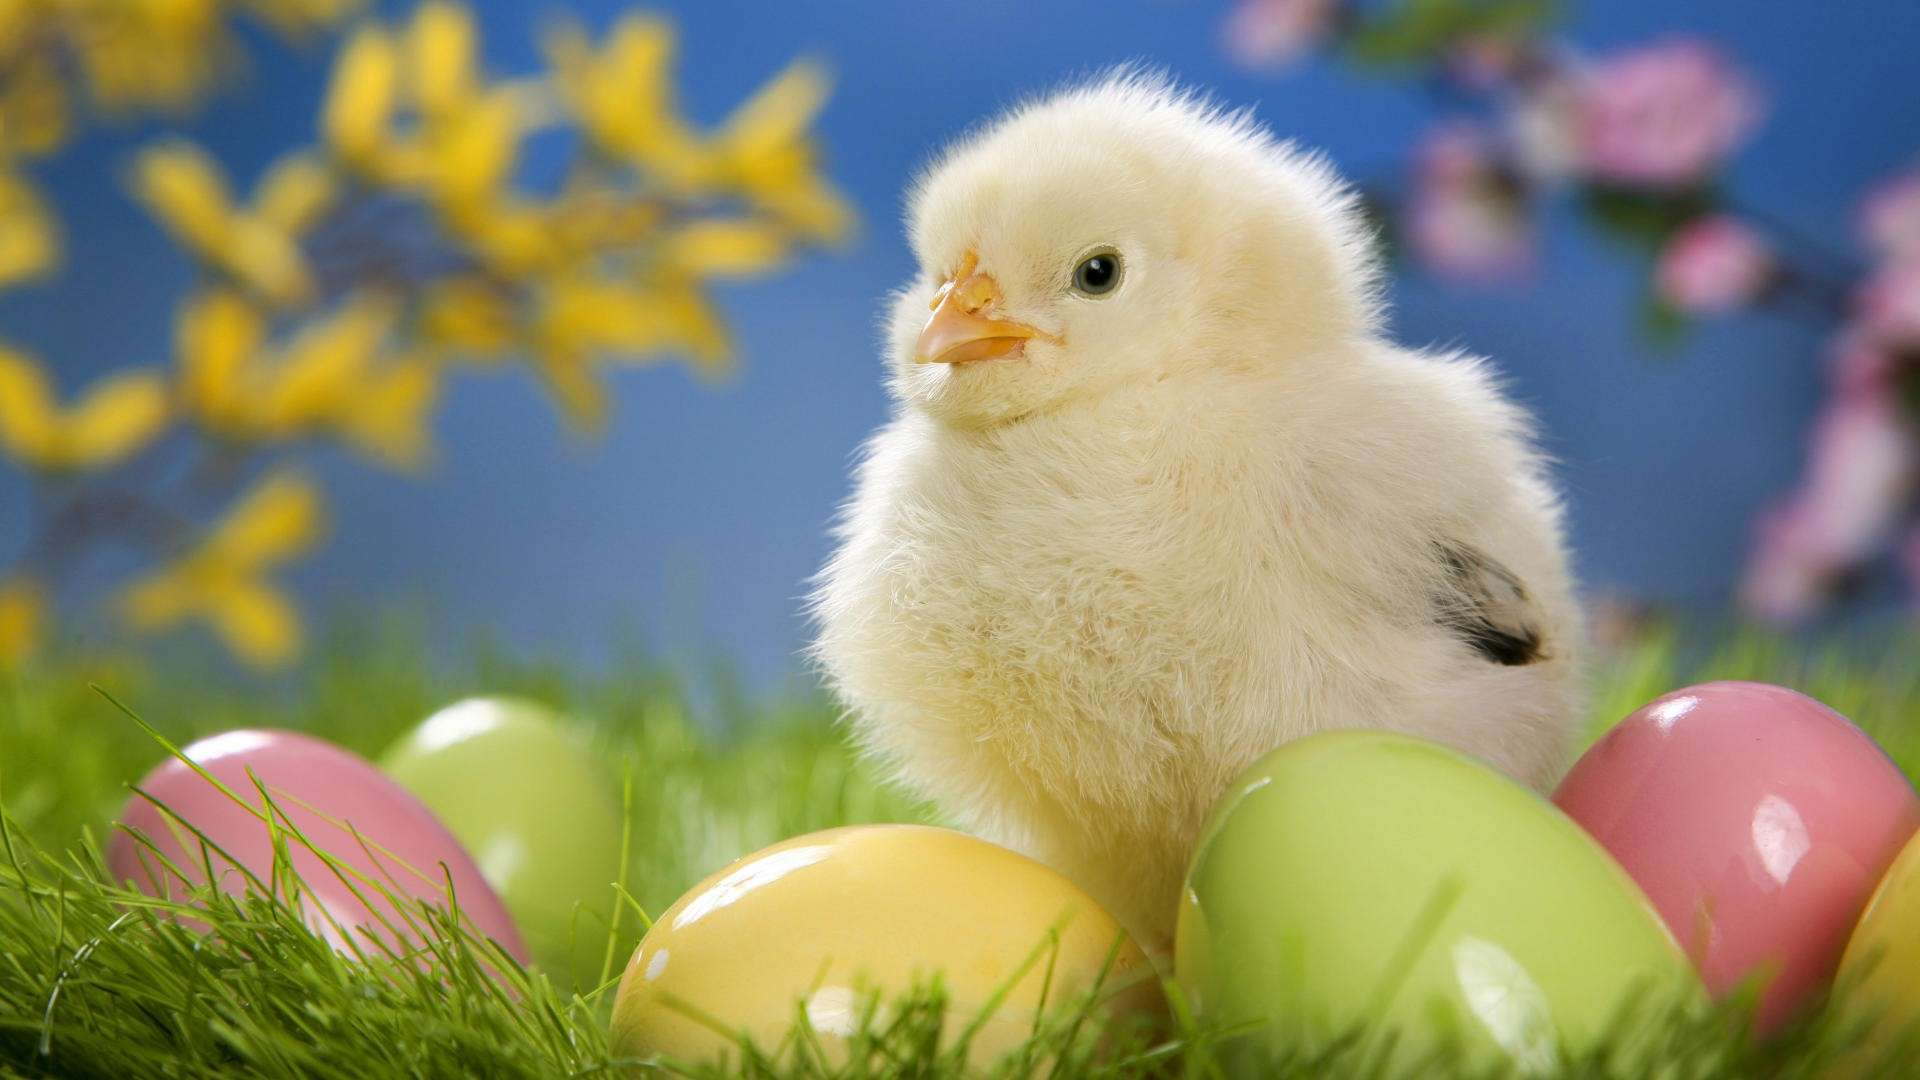 Cute Easter Chick with Eggs HD Wallpaper FullHDWpp   Full HD 1920x1080